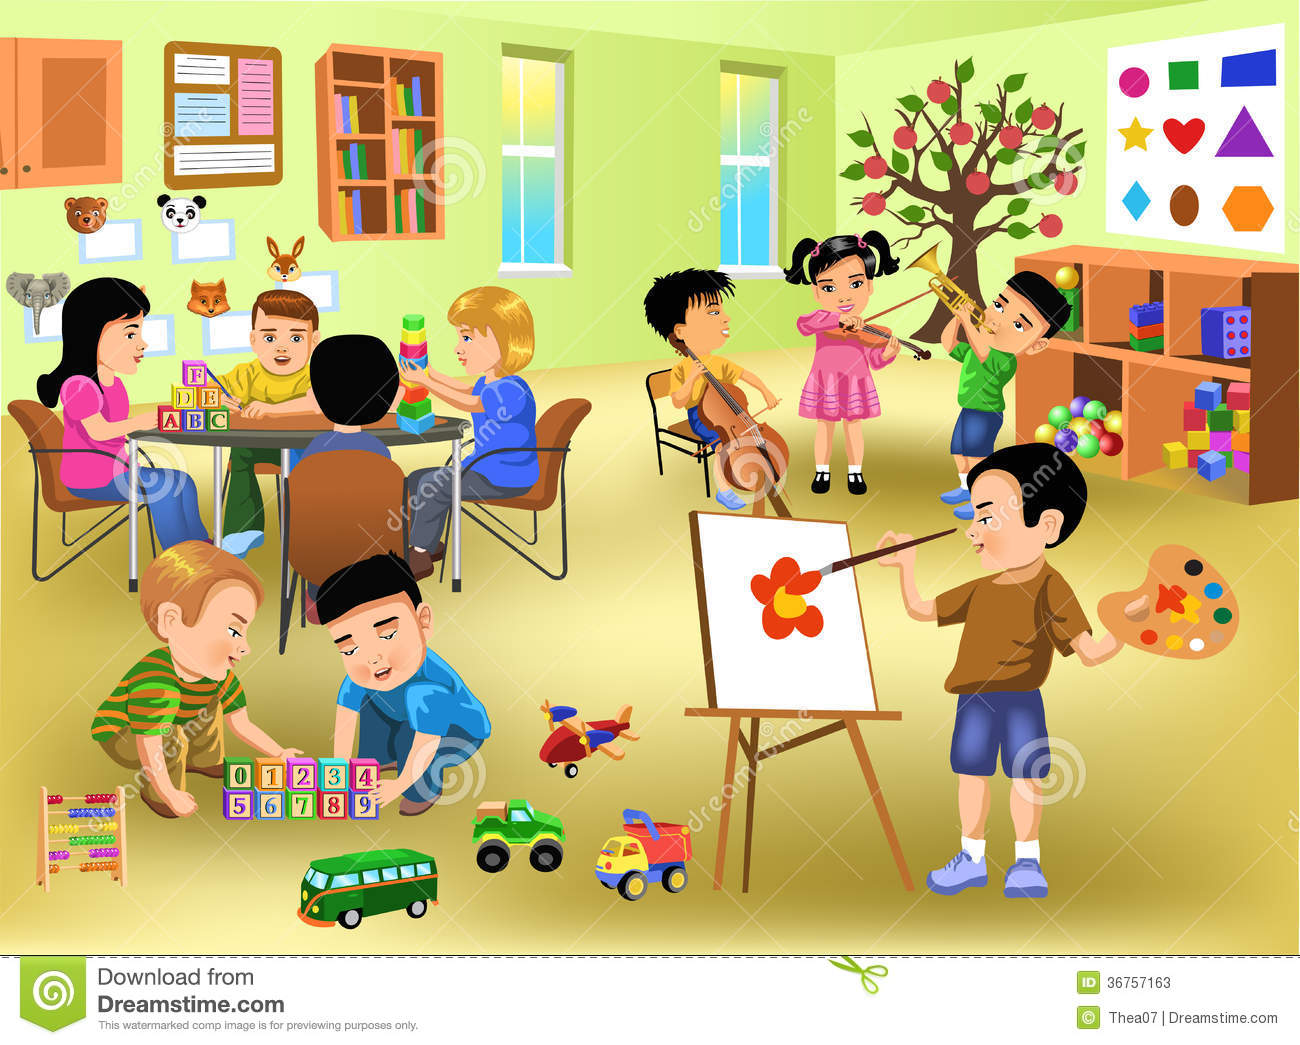 royalty free stock . Activities clipart classroom